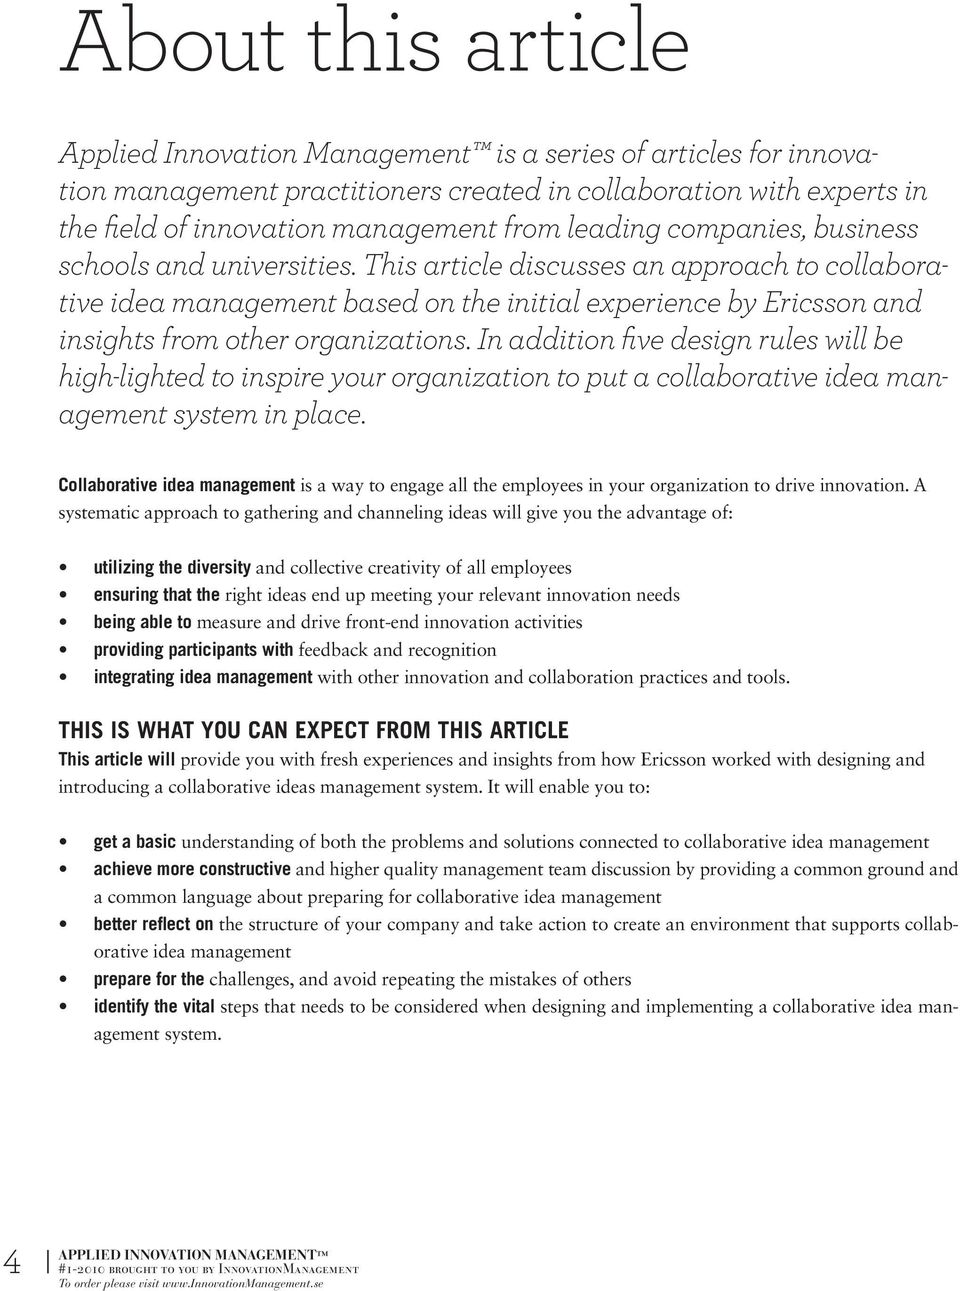 This article discusses an approach to collaborative idea management based on the initial experience by Ericsson and insights from other organizations.